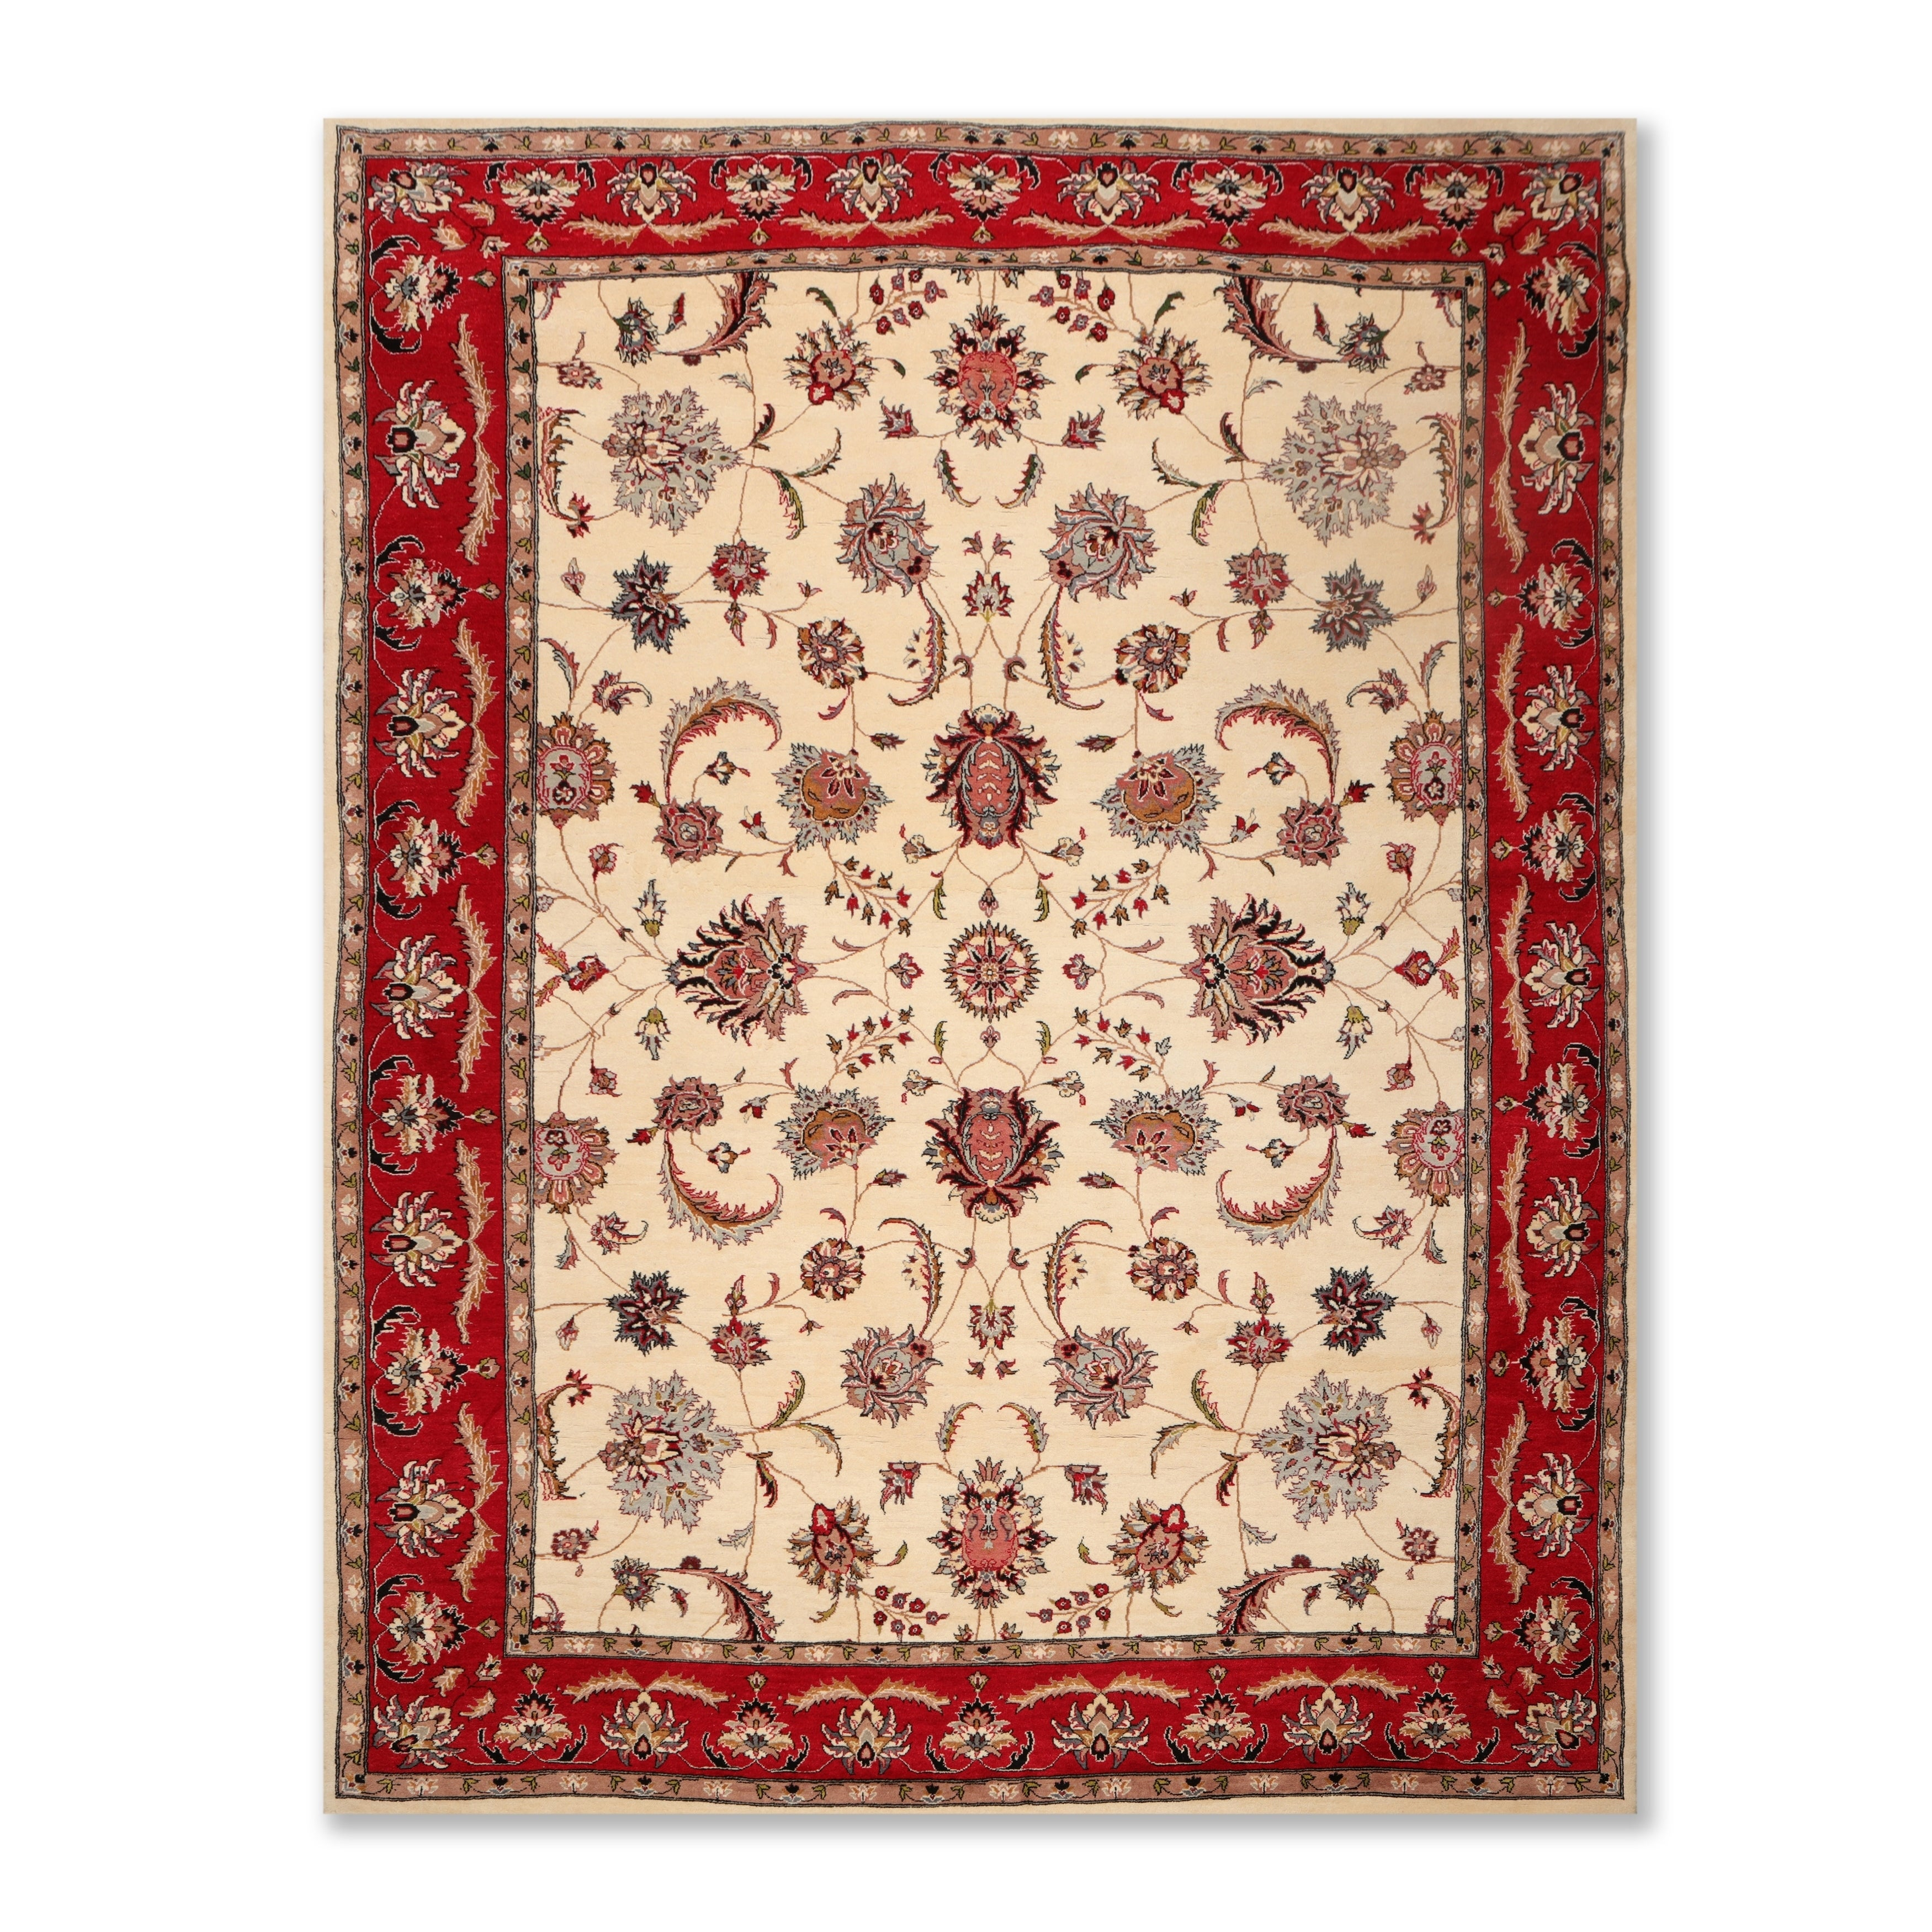 Isfahan 200 Kpsi Hand Knotted Wool Persian Oriental Area Rug 8 X10 6 8 X 10 6 On Sale Overstock 25558030